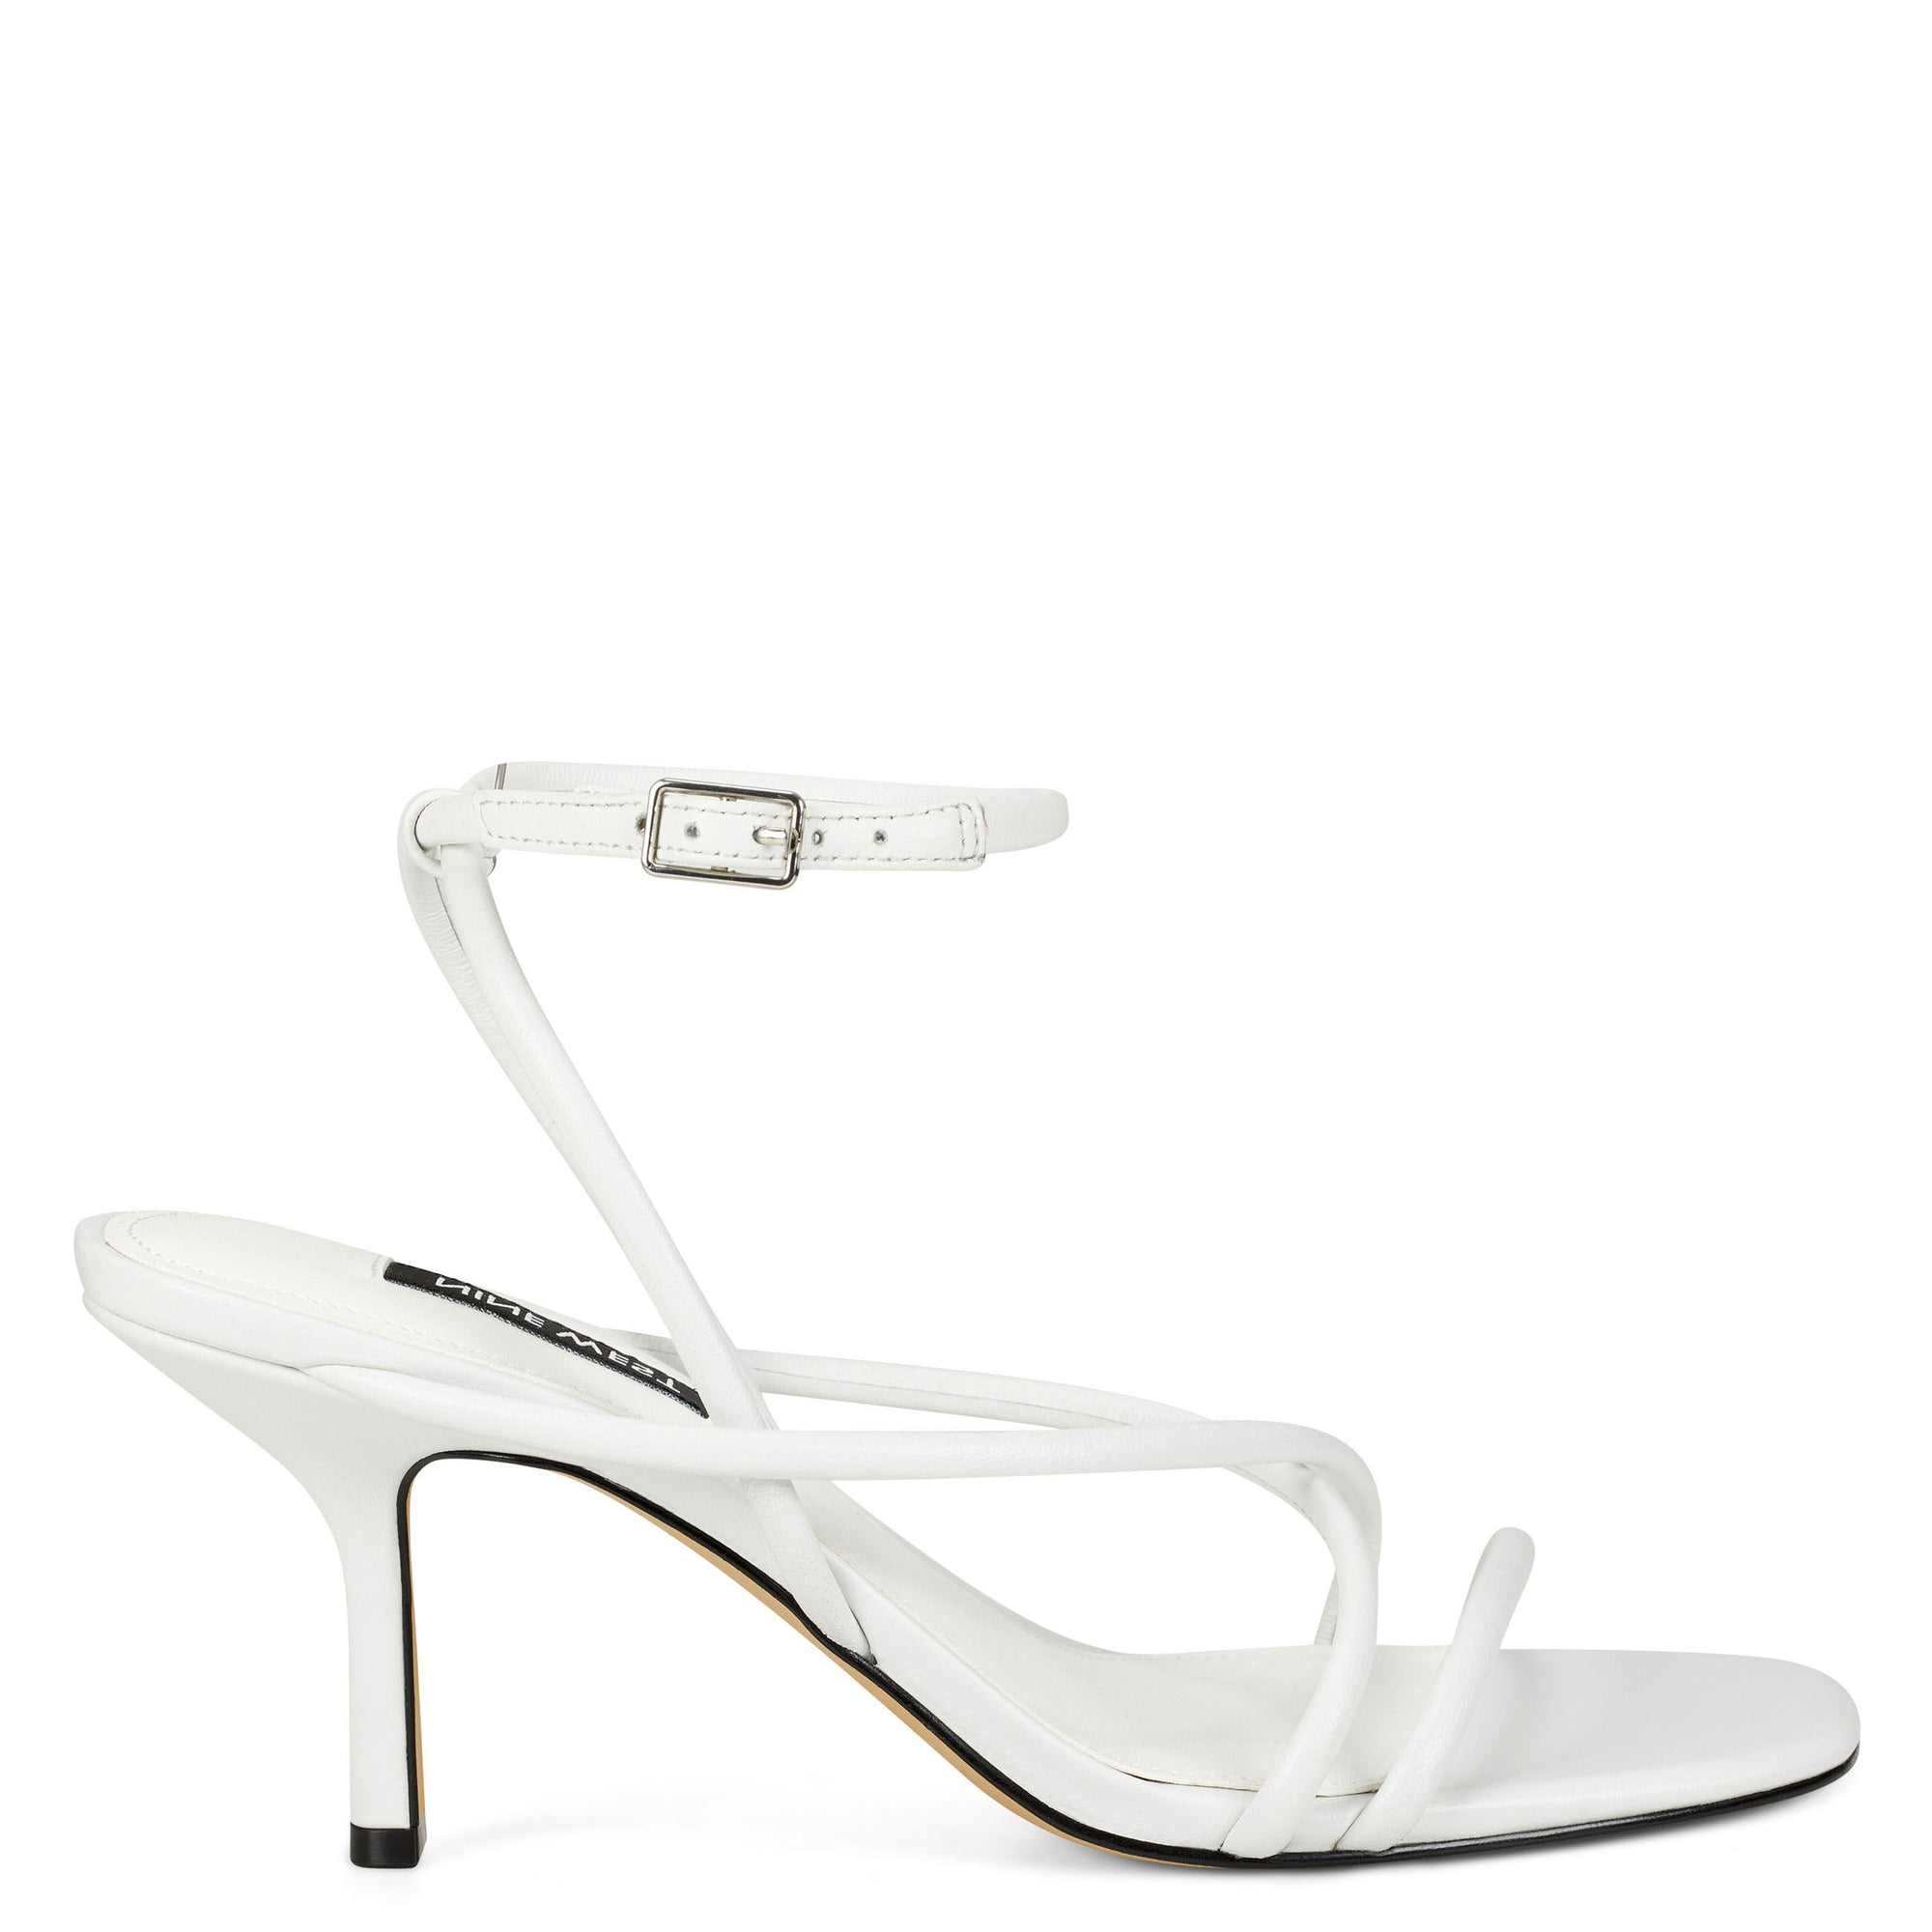 nolan-heeled-strappy-sandals-in-white-leather